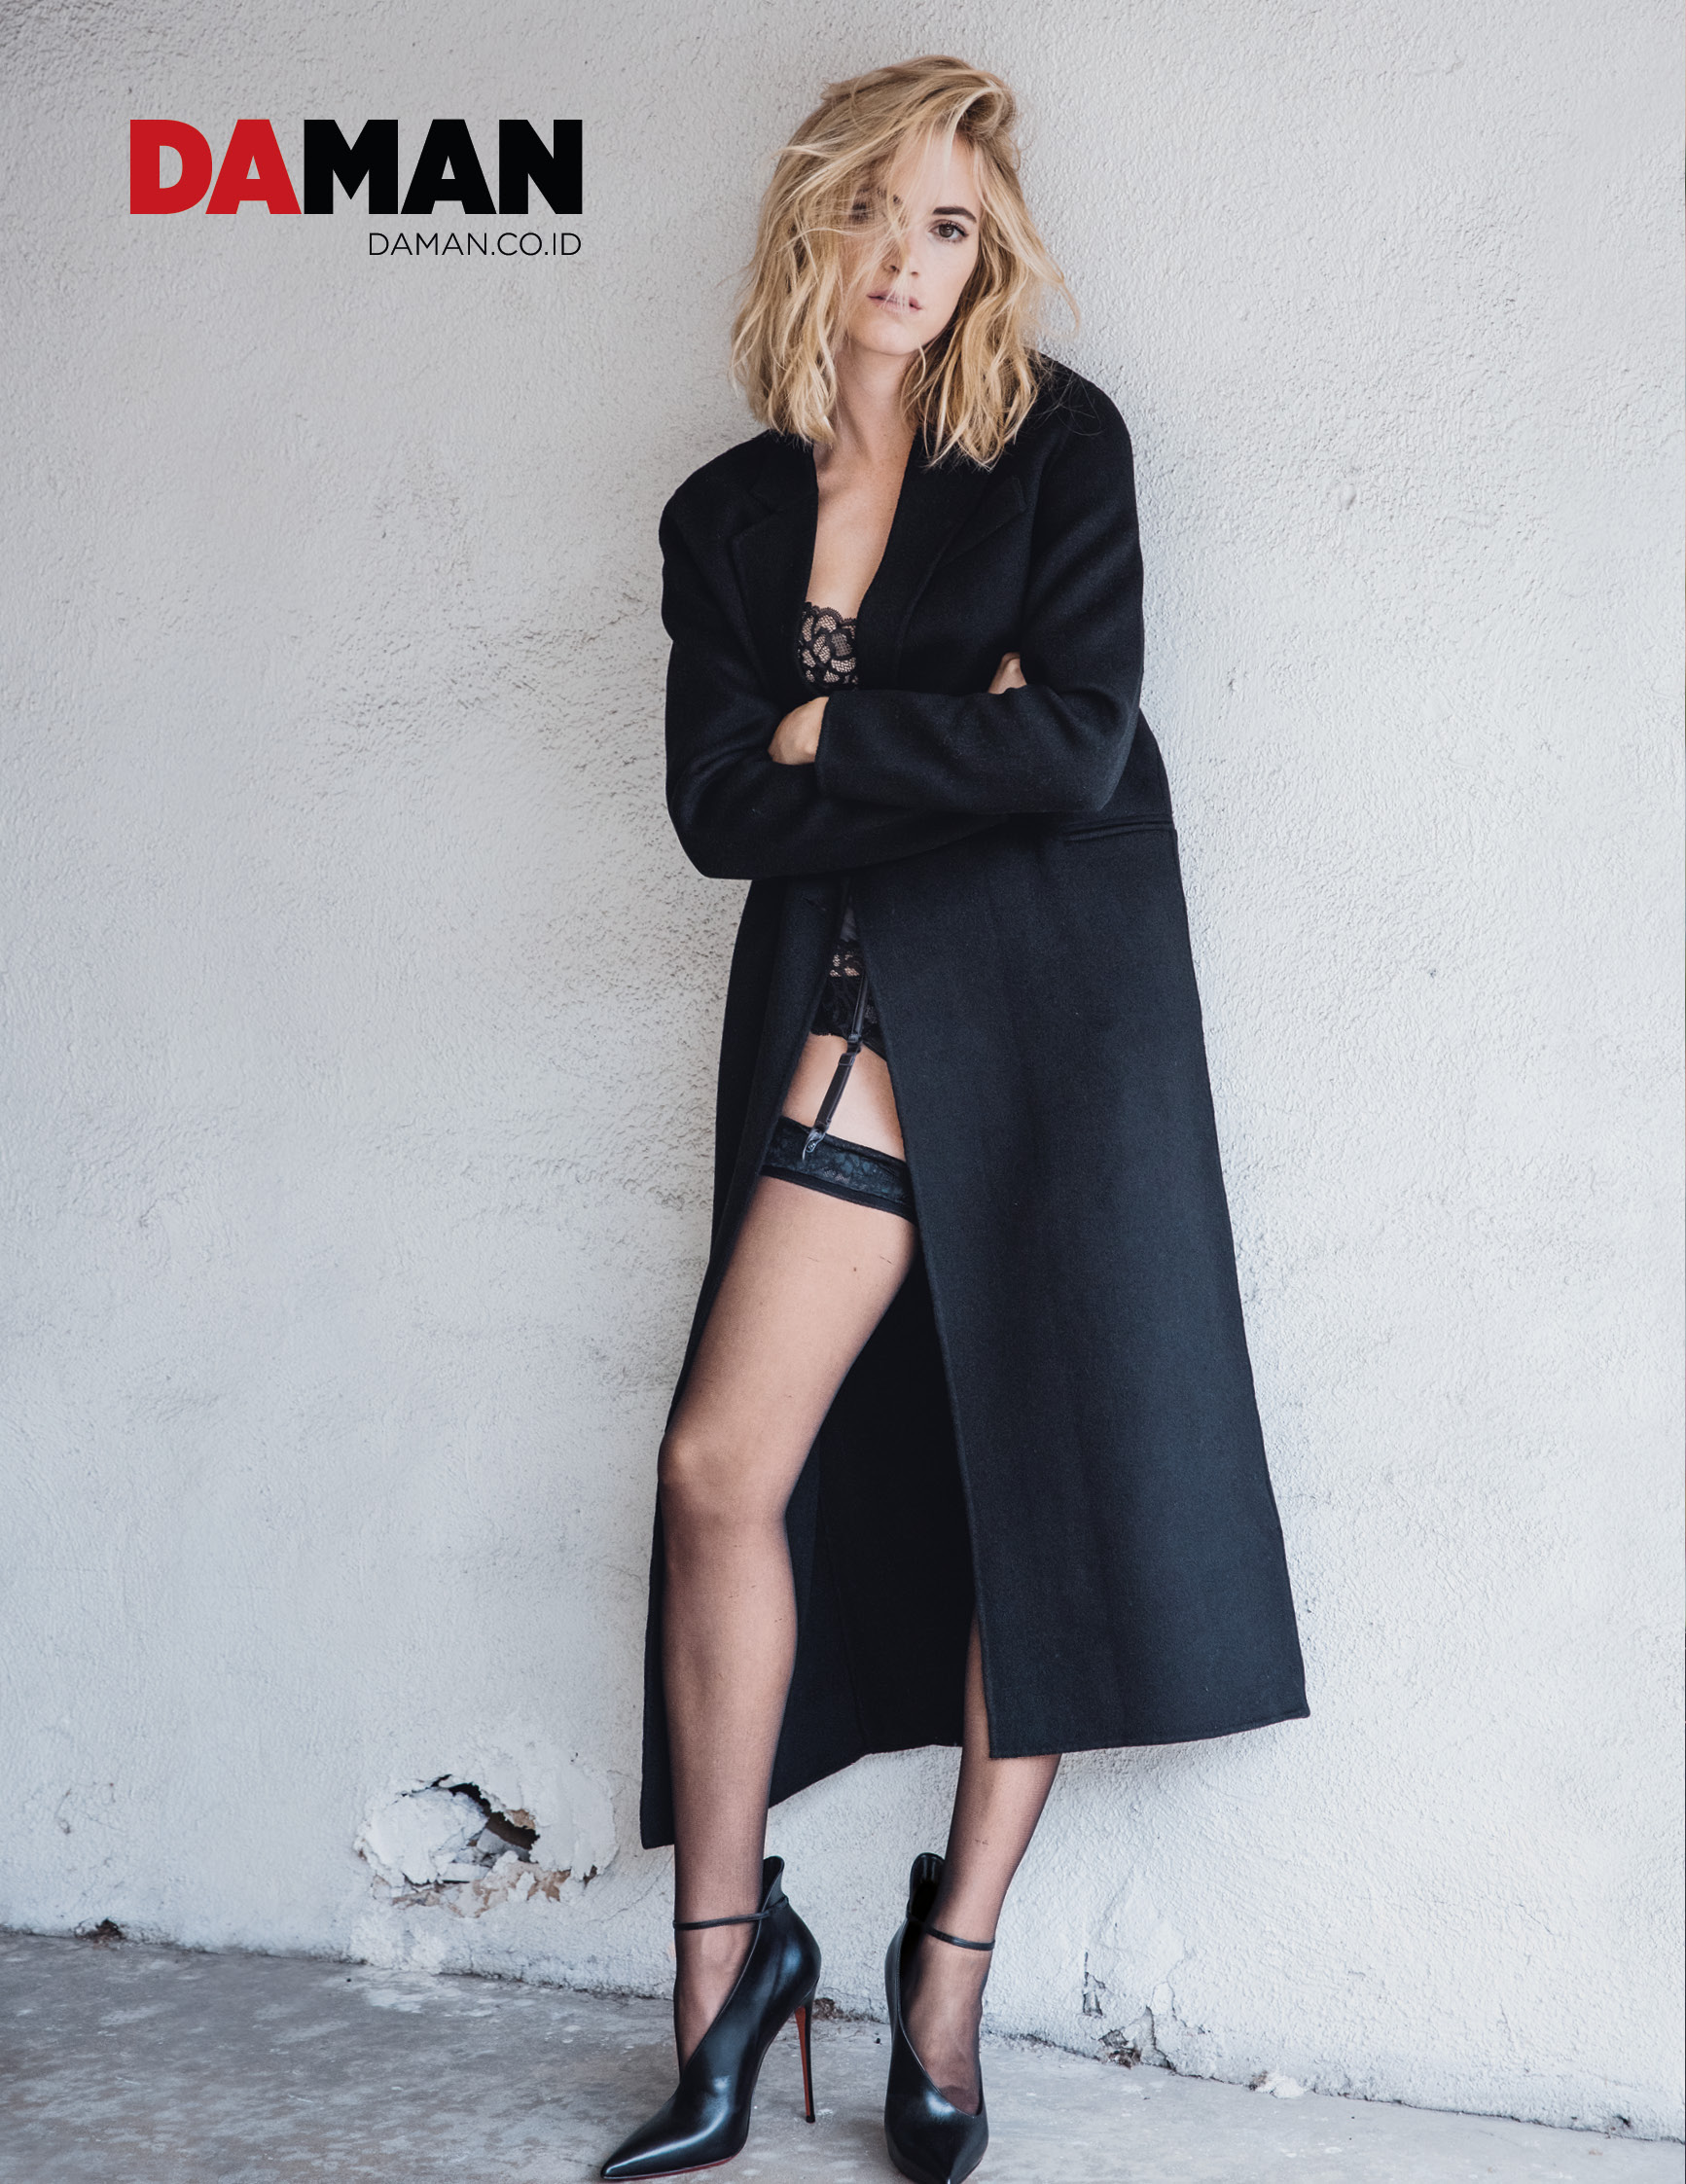 Young Emily Wickersham nudes (46 foto and video), Ass, Paparazzi, Feet, panties 2015